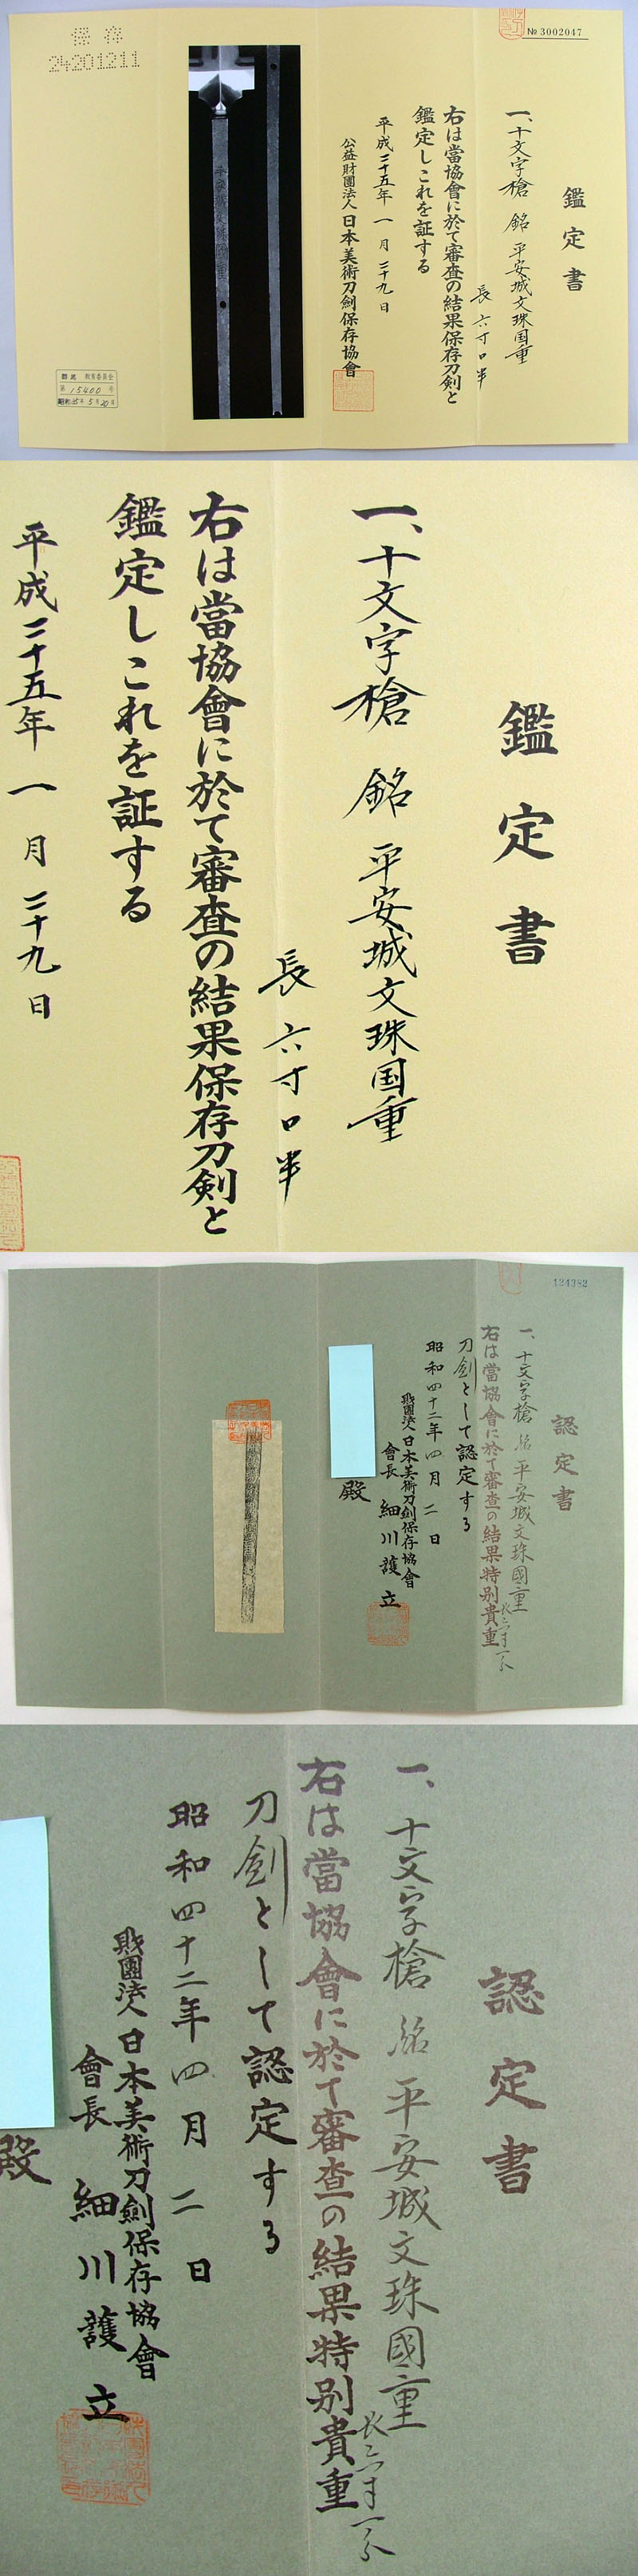 1文字槍 平安城文珠国重 Picture of Certificate